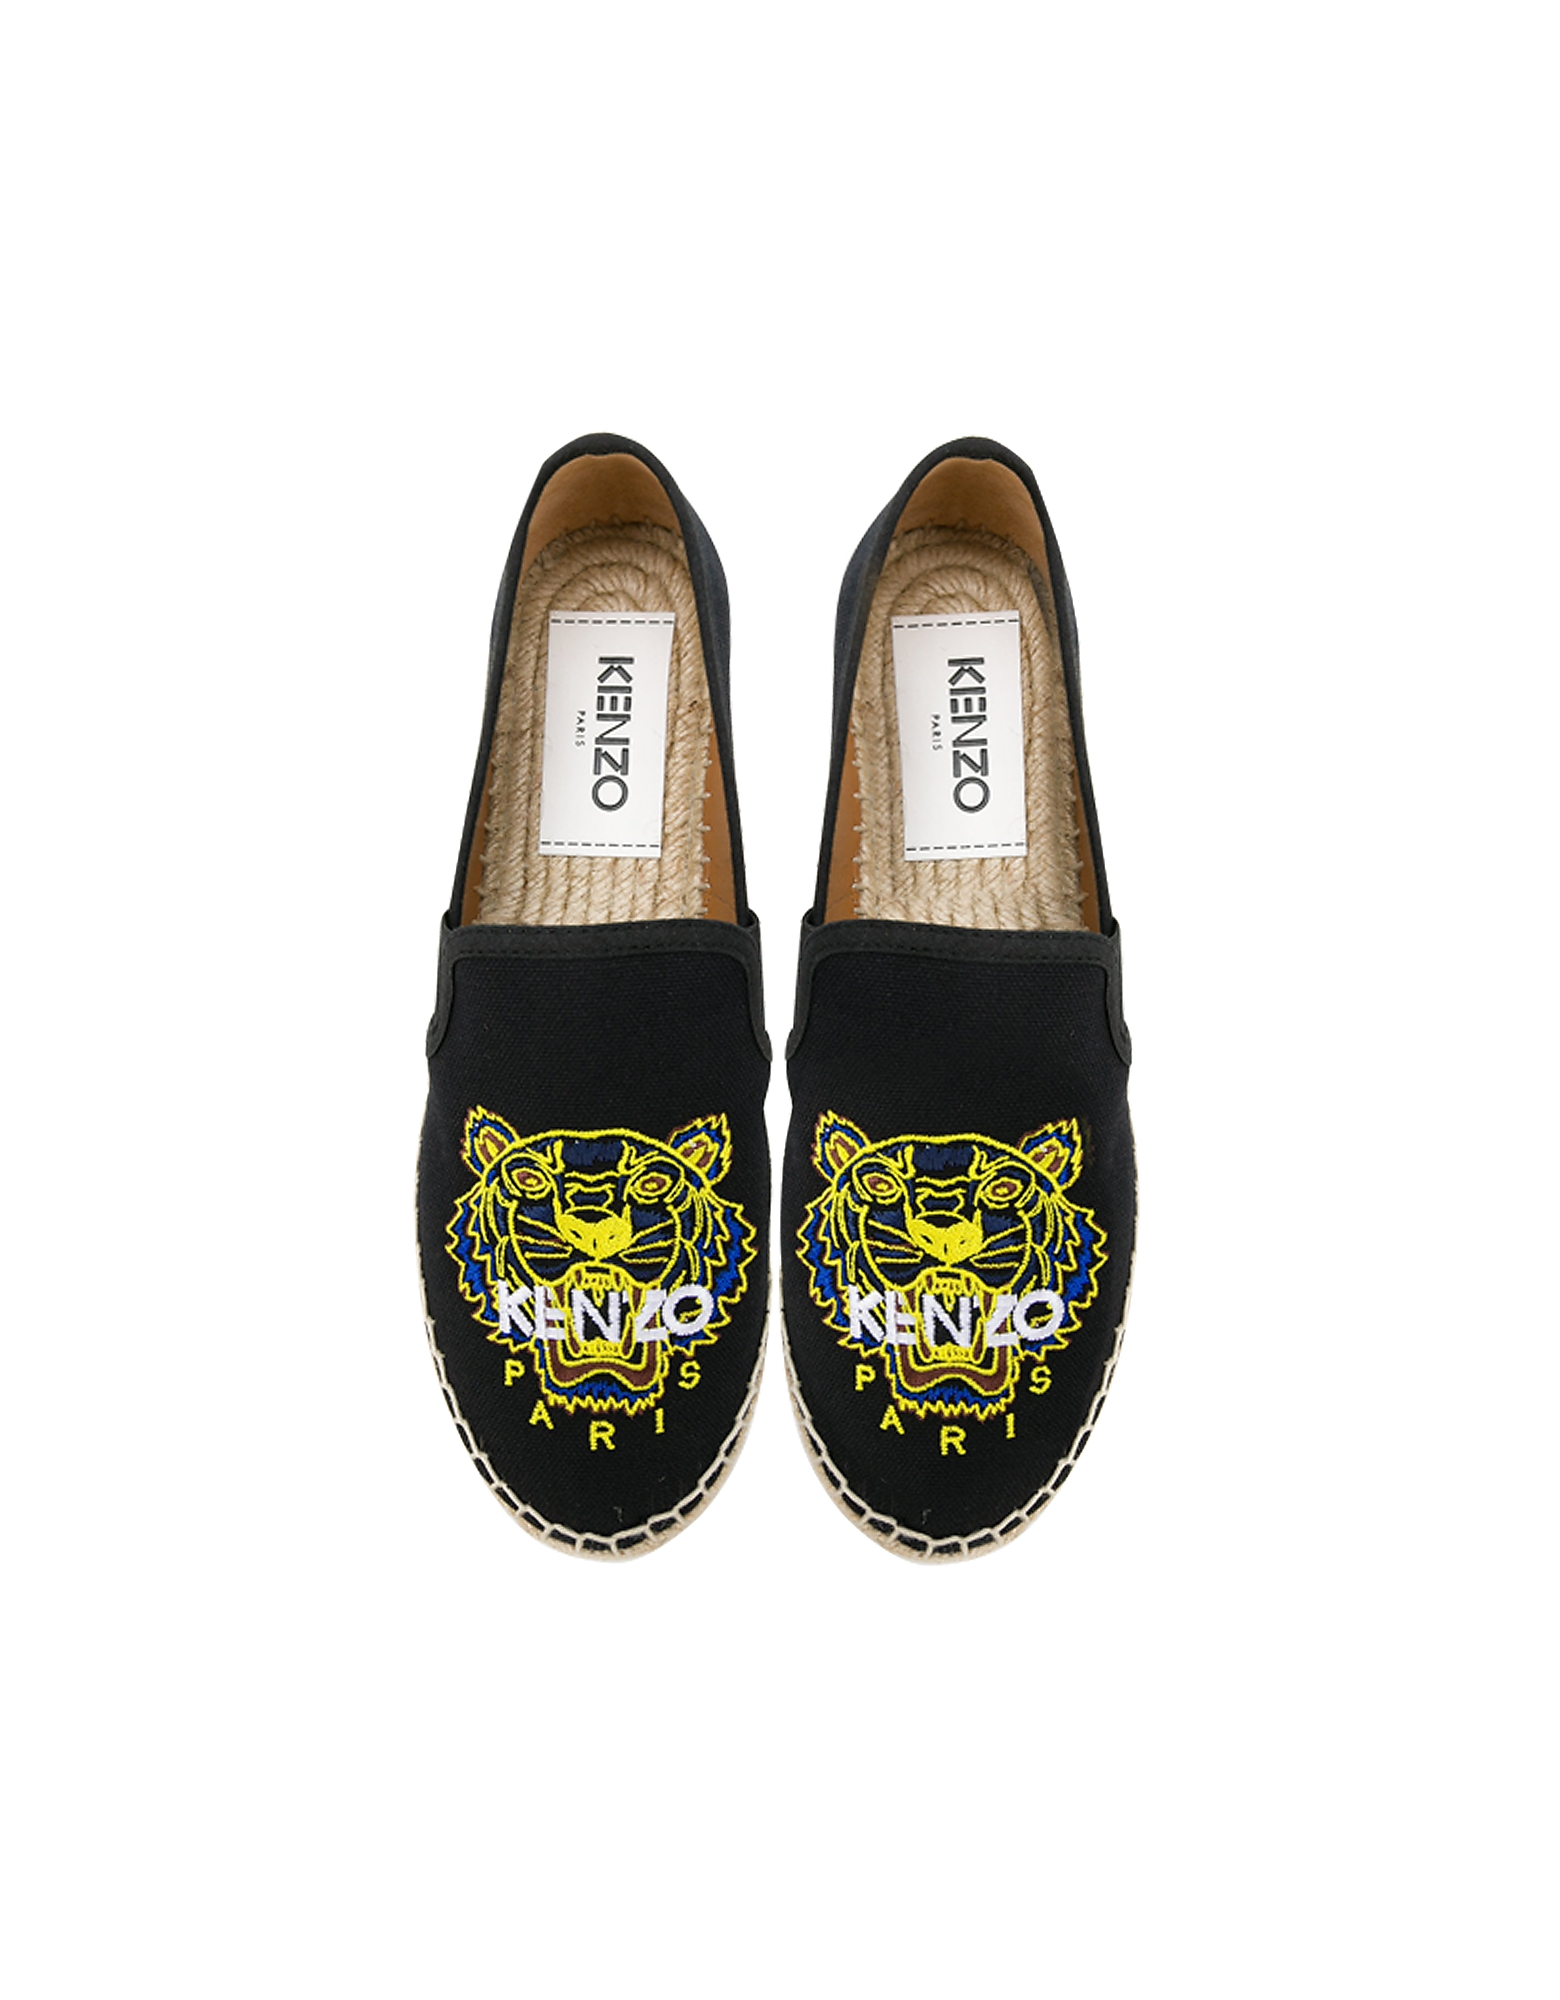 Kenzo Shoes, Black Elastic Canvas Women's Tiger Espadrilles